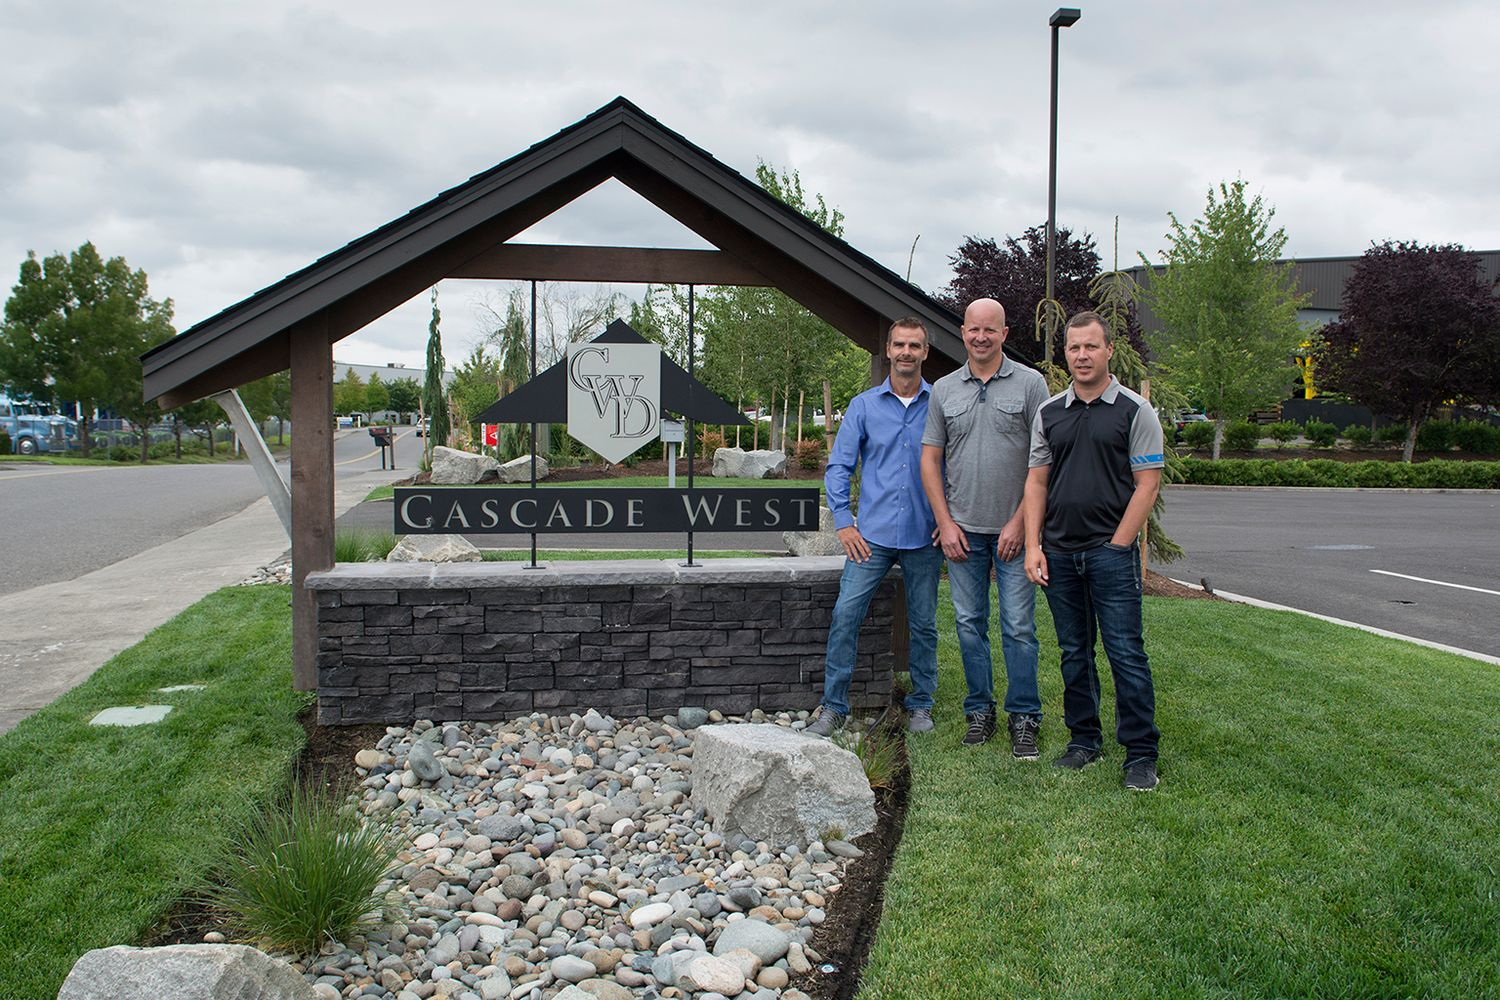 from Left to Right : Ron Wagner, Jason Stenersen and Brent Kalliainen from Cascade West Development